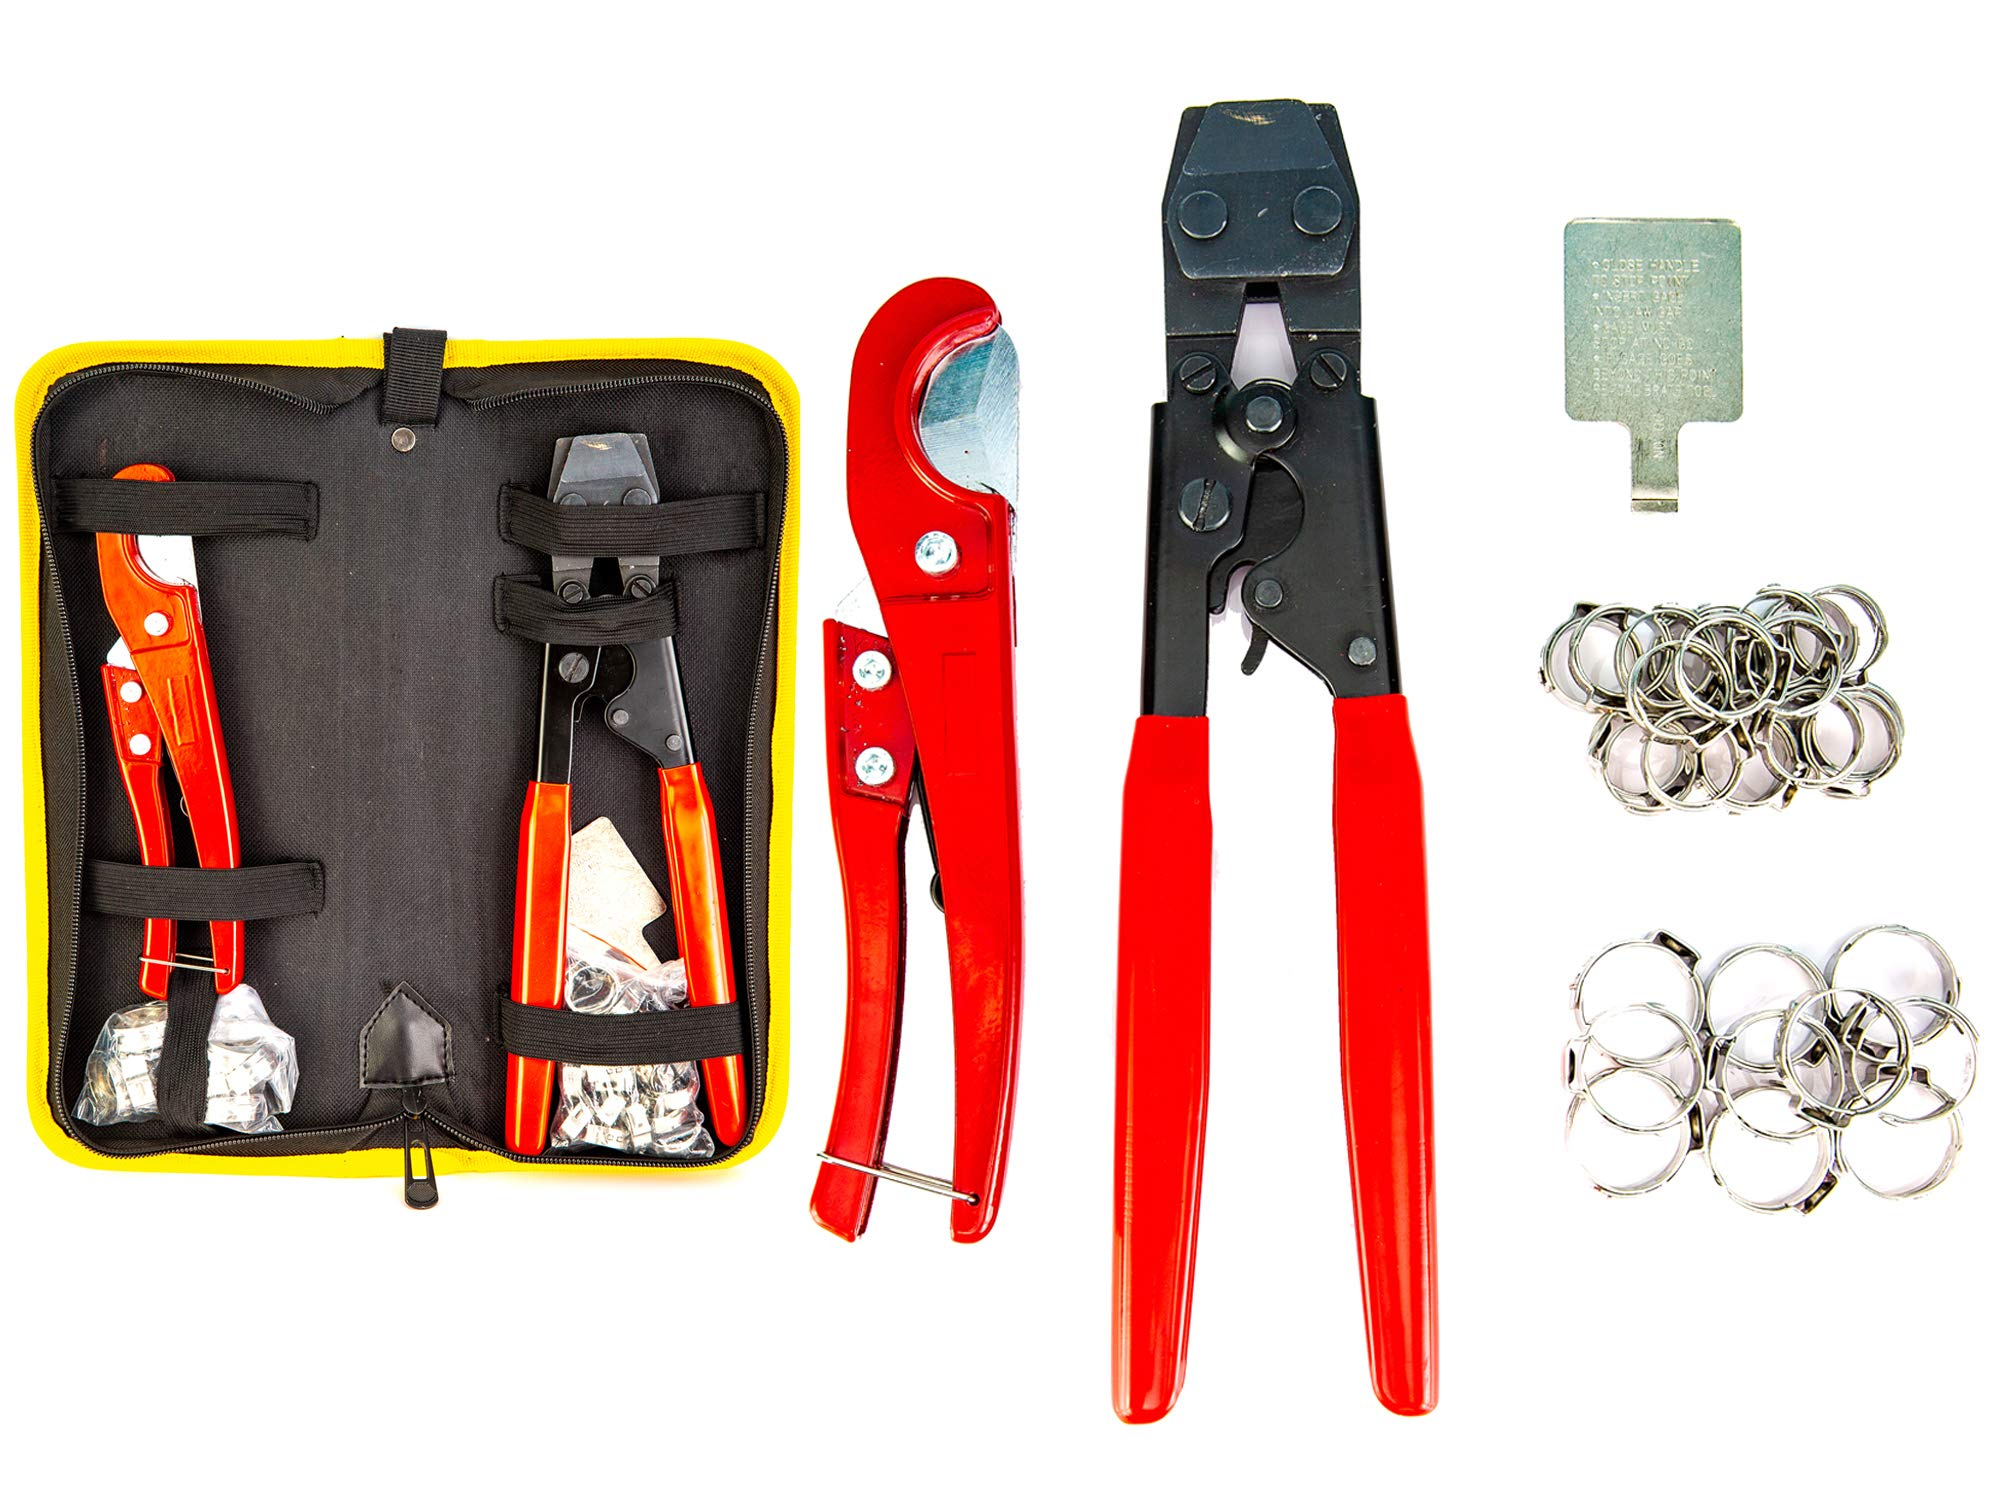 Pex Crimping Clamp Cinch Tool and Pipe Hose Cutter Meets ASTM 2098, Pipe Fitting Tool Kit for Stainless Steel Clamps Sizes from 3/8'' to 1'' with 20pcs 1/2'' and 10 pcs 3/4'' Clamps set with Storage Bag, by Fstop Labs